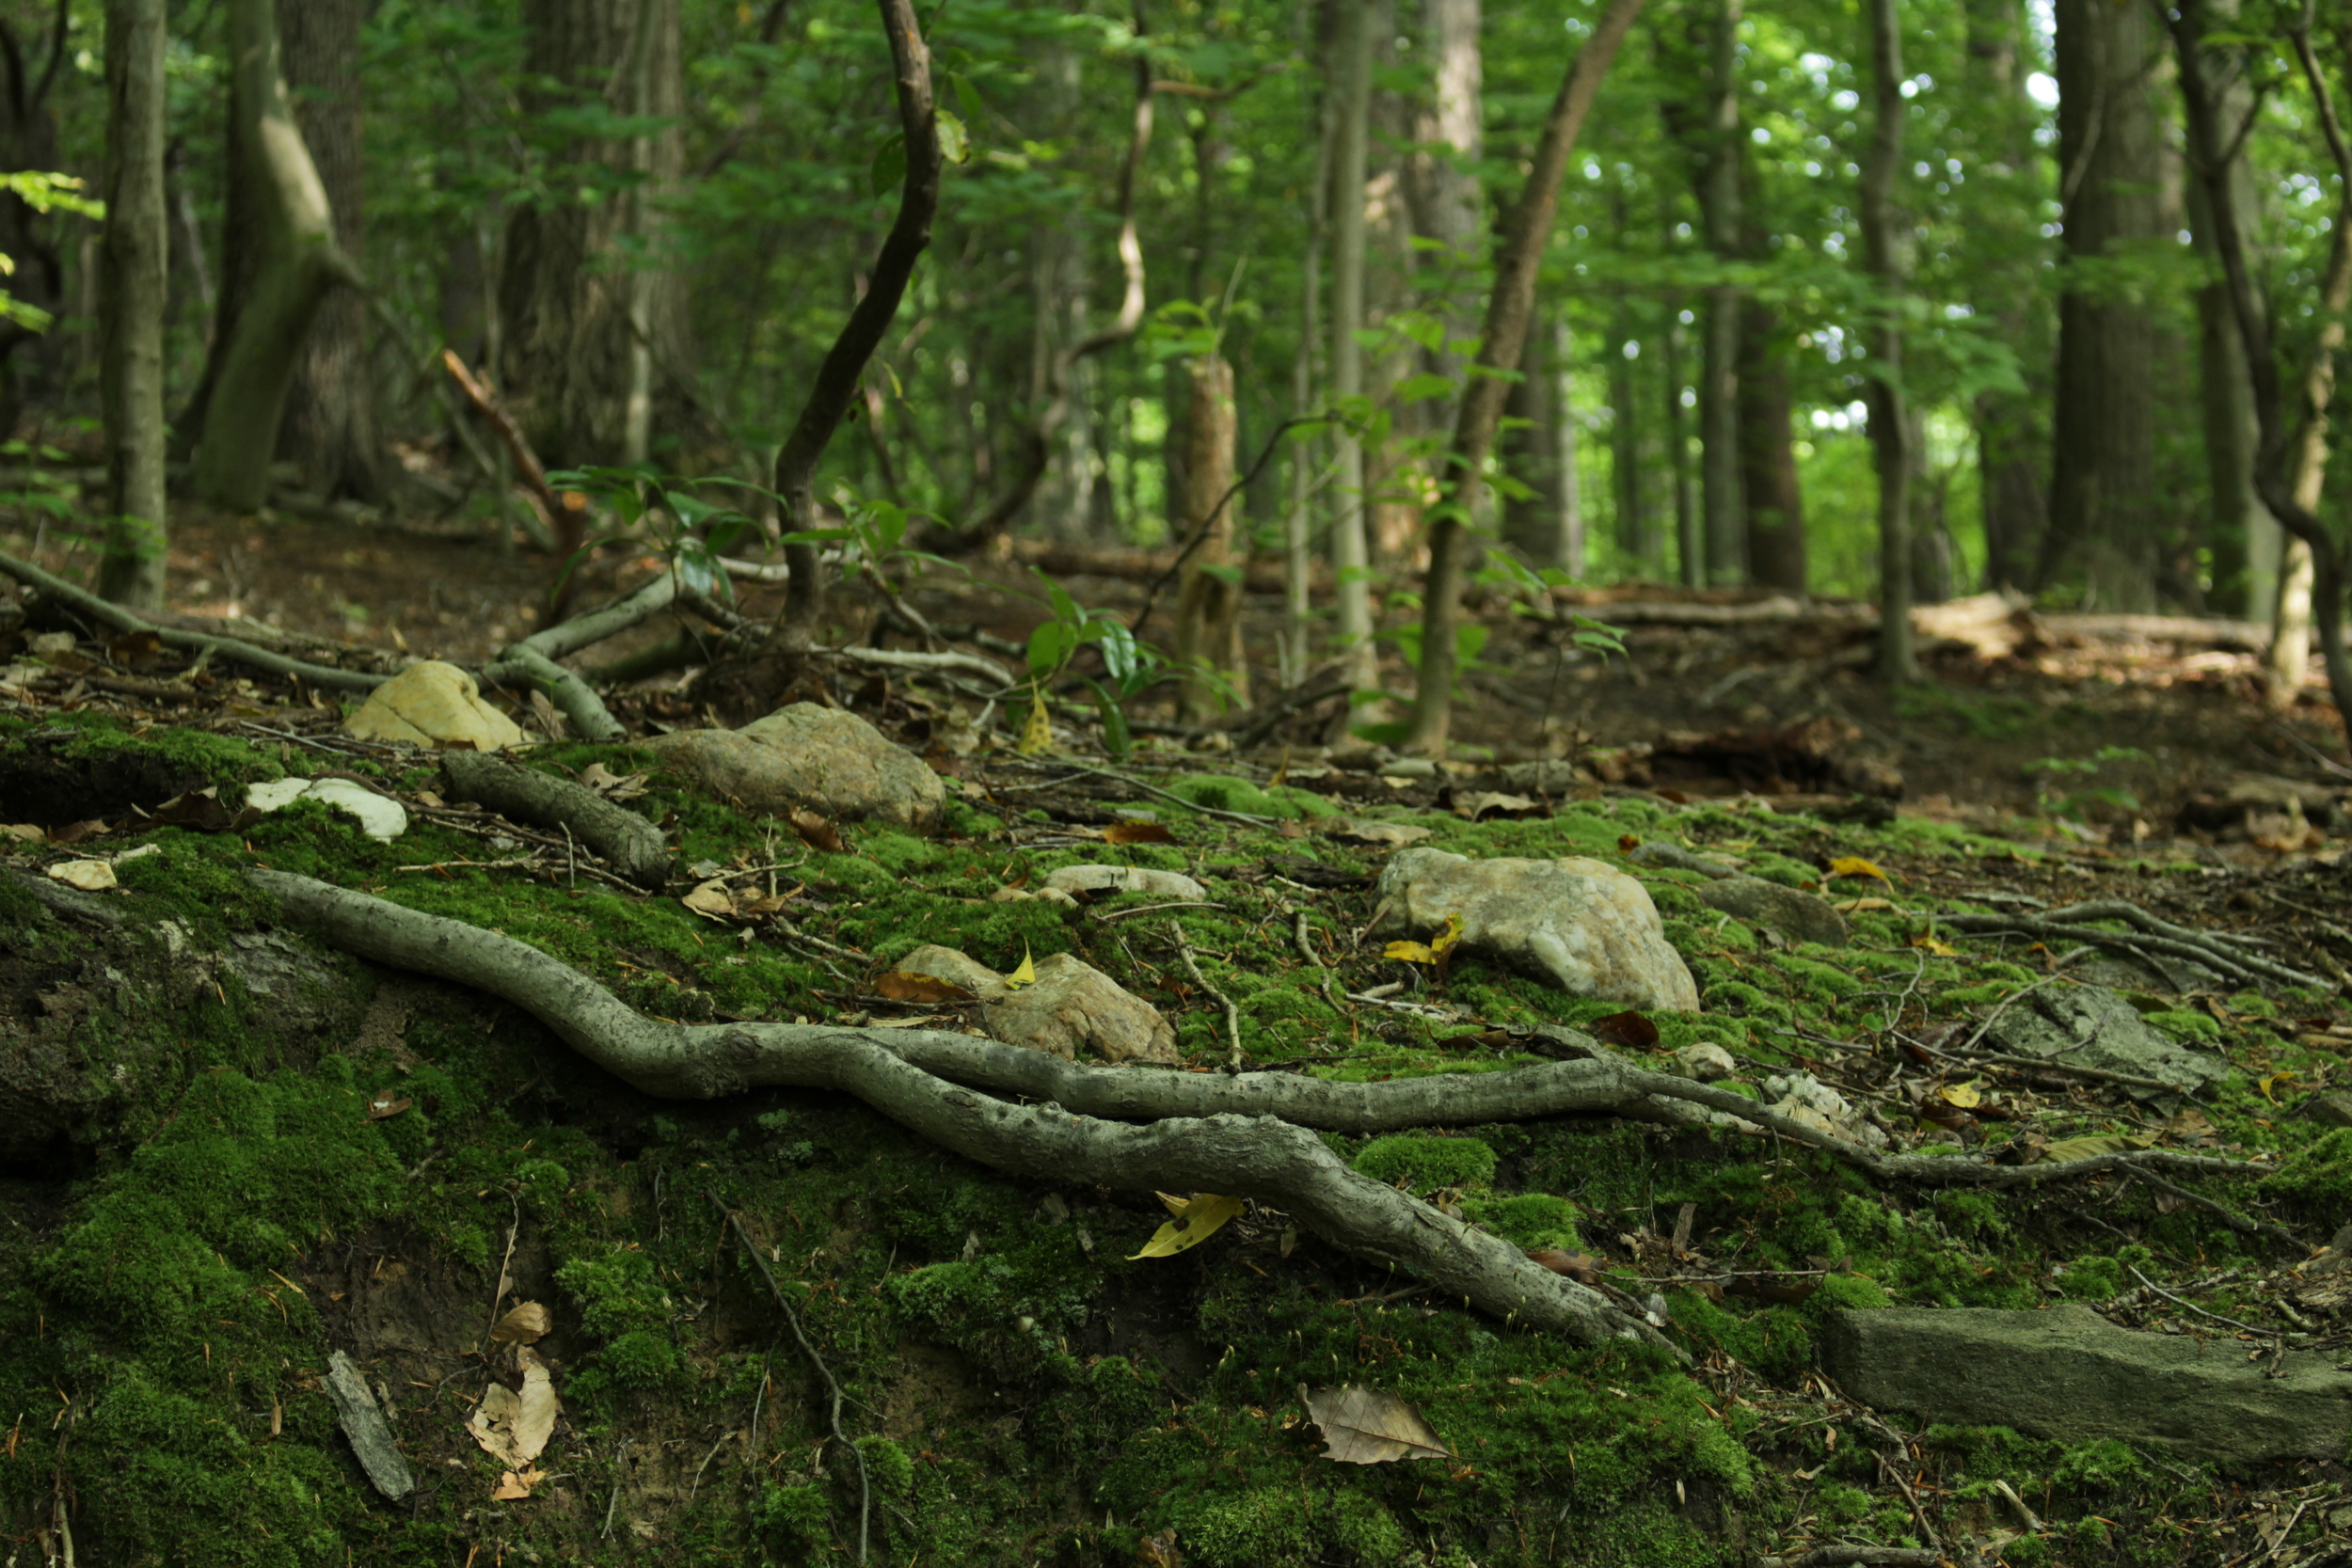 If stillness isn't on your agenda, Rock Creek Park is also a great place to get started trail running. Just look out for tree roots; sometimes they come out of the ground and trip you.